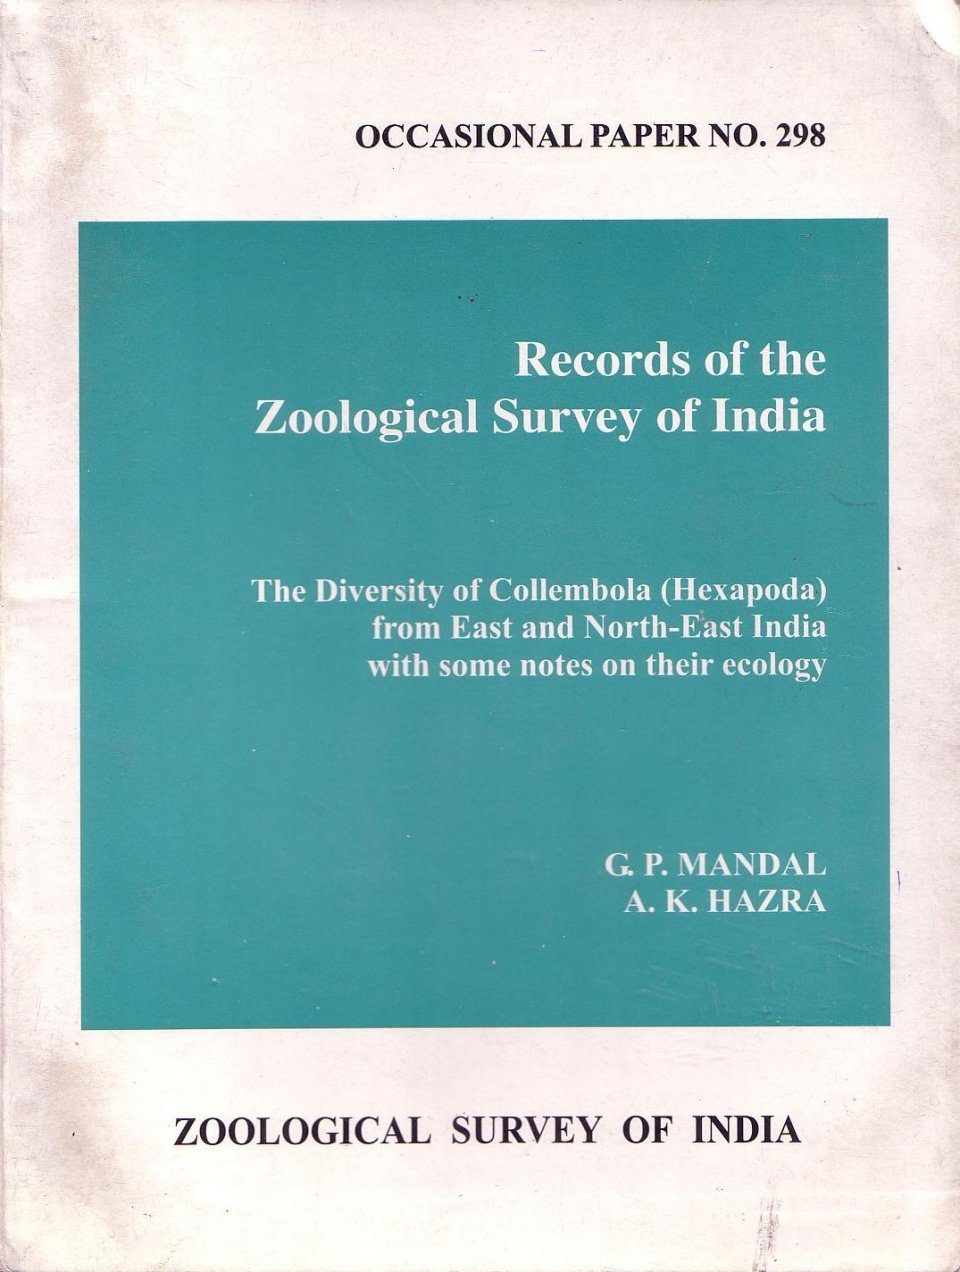 The Diversity of Collembola (Hexapoda) from East and North-East India with Some Notes on their Ecology